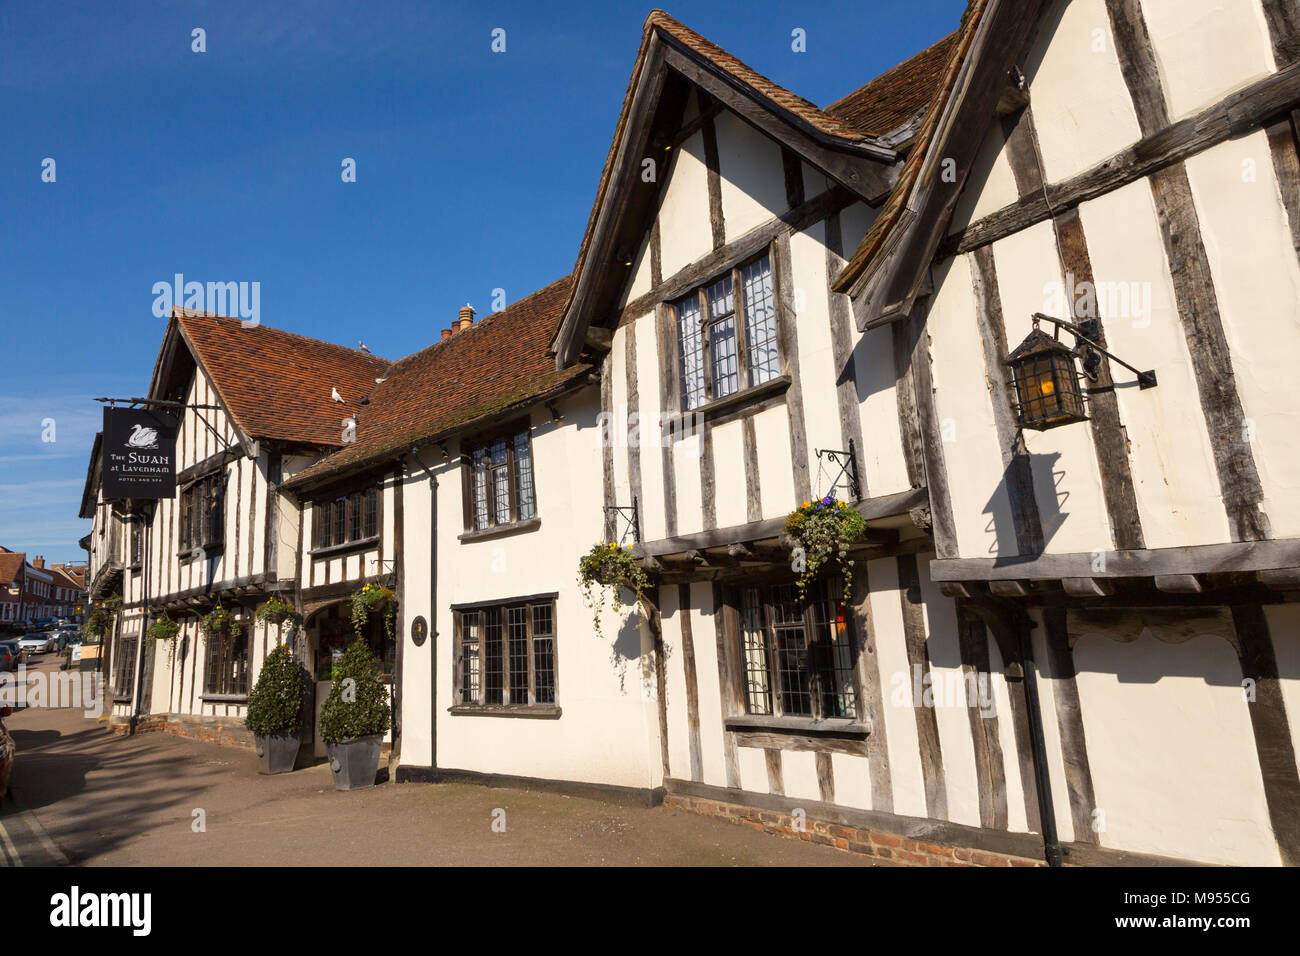 Historic Tudor architecture of the Swan Hotel, Lavenham, Suffolk, England, UK Stock Photo